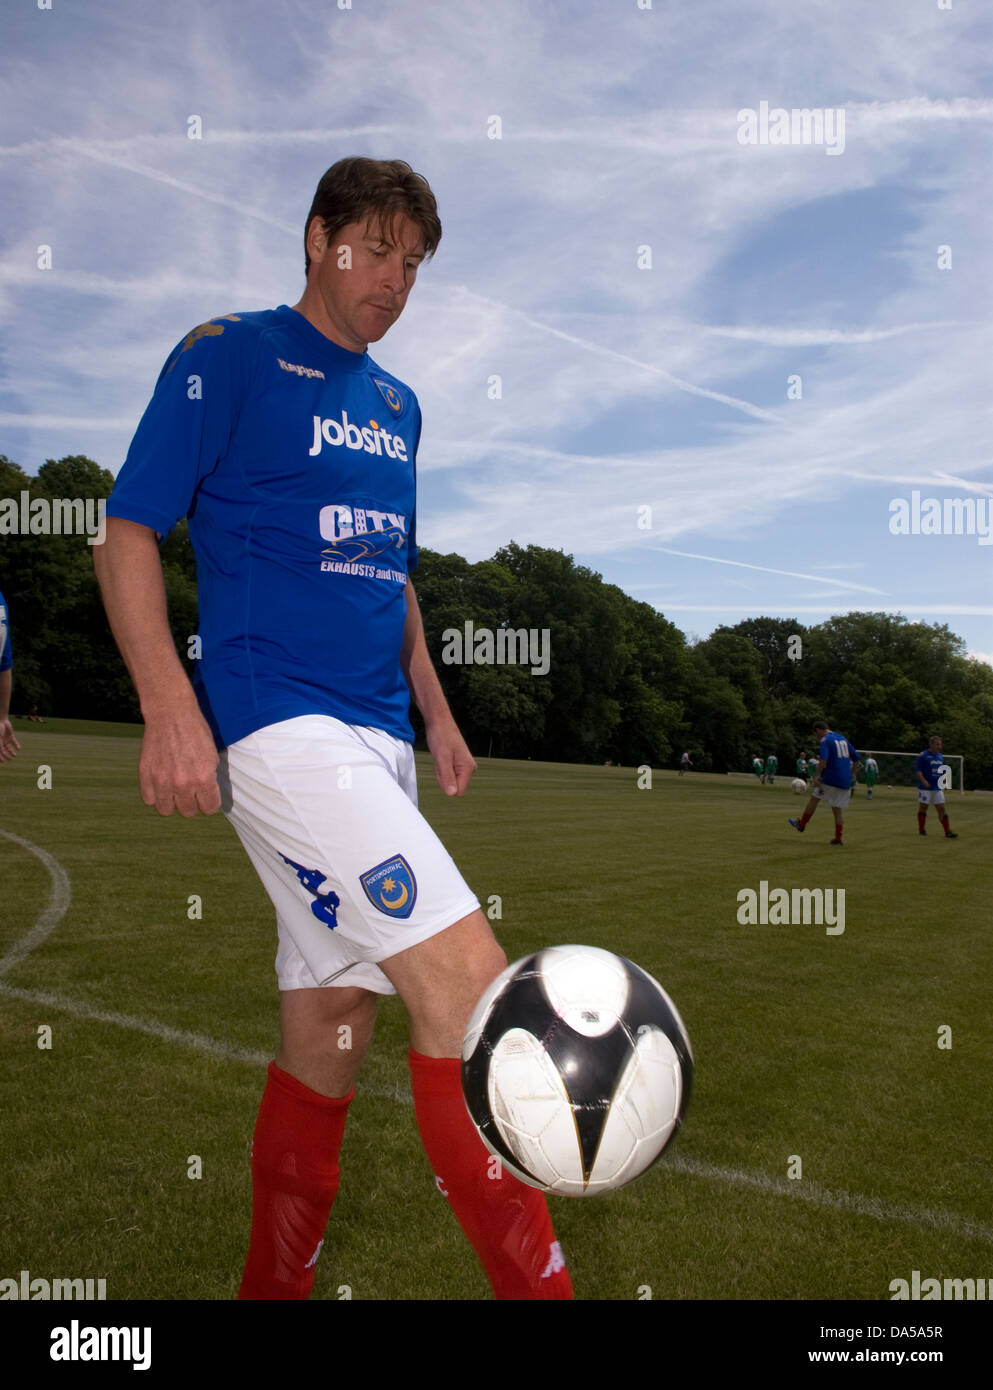 Former Portsmouth and England soccer player Darren Anderton warming up for an exhibition match, Fernhurst, Hampshire, - Stock Image